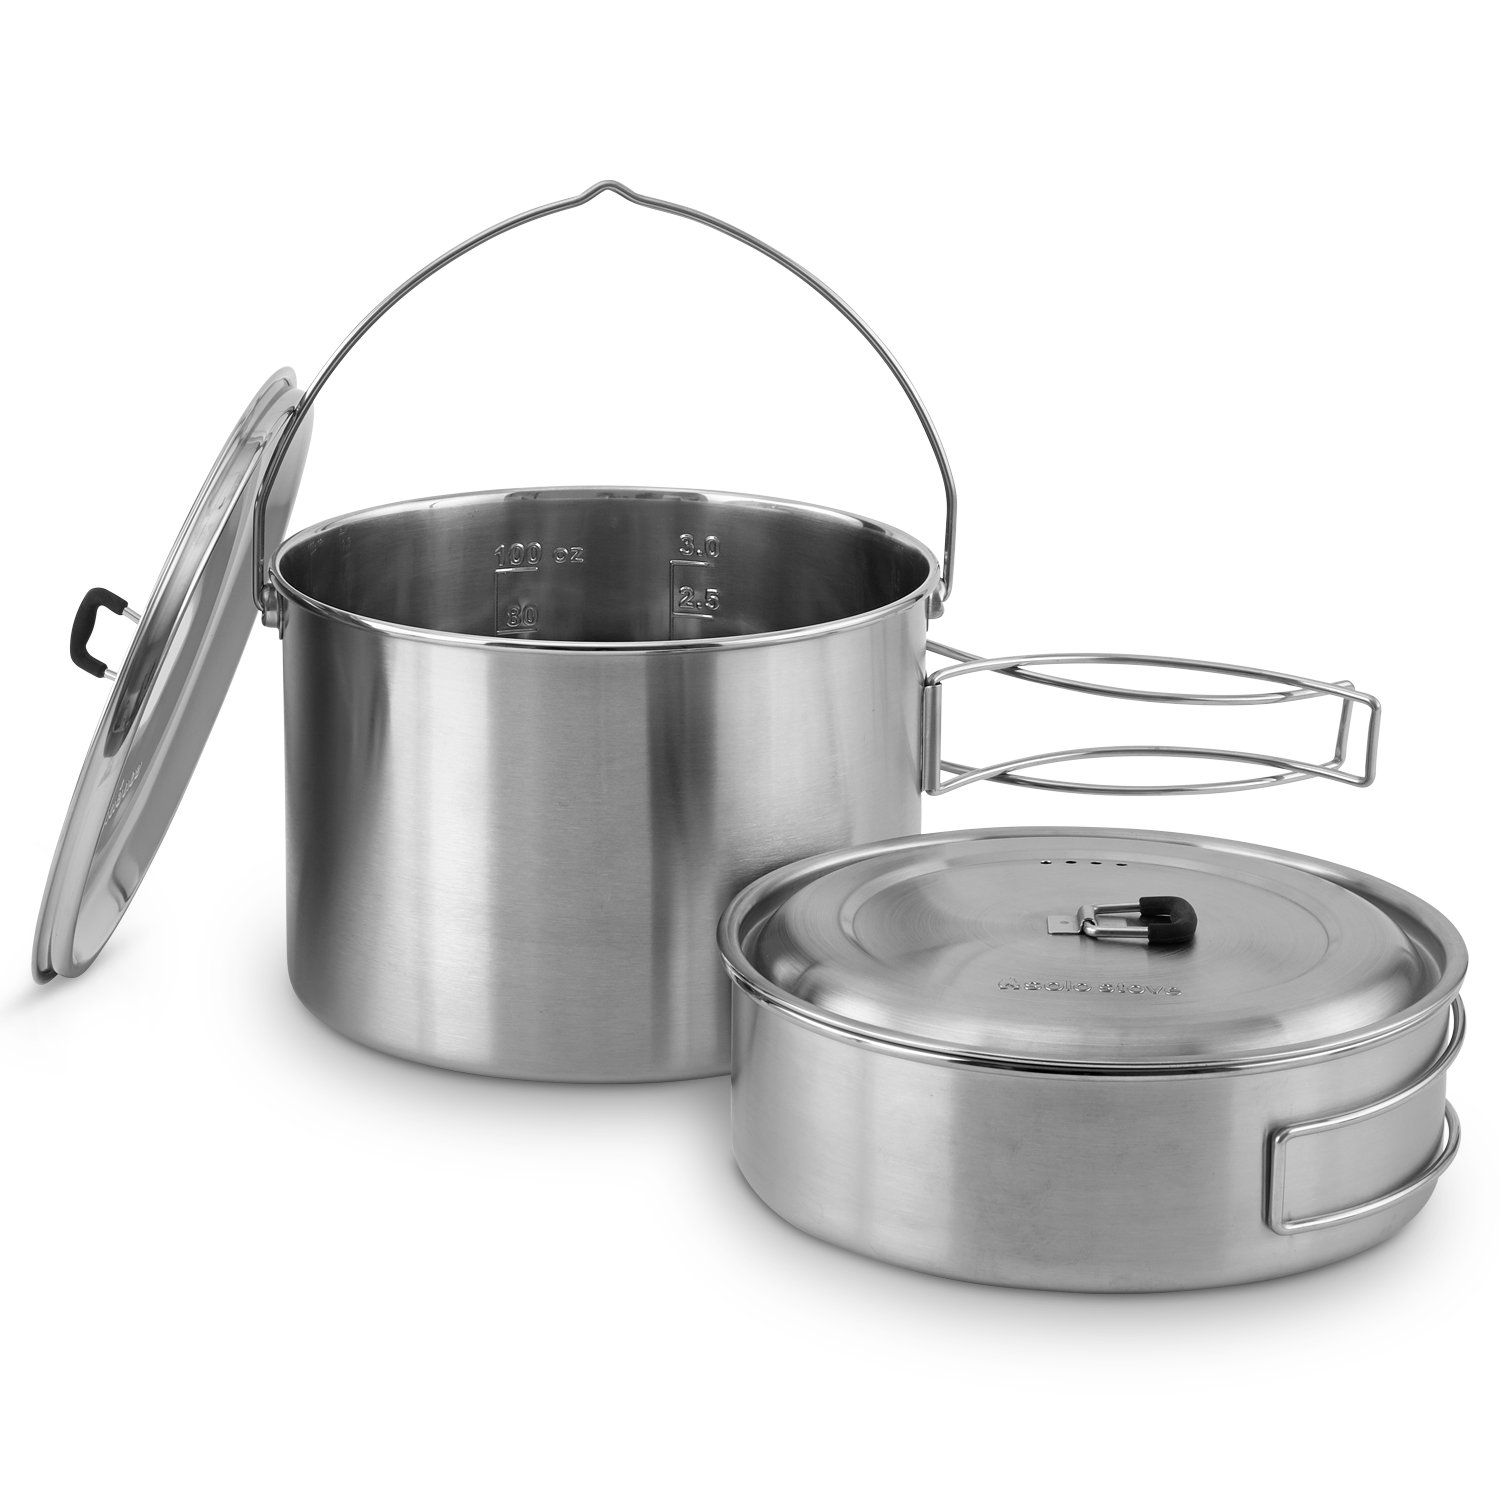 Solo Stove 2 Pot Set: Stainless Steel Companion Pot Set for Campfire. Great for Backpacking, Camping, Survival